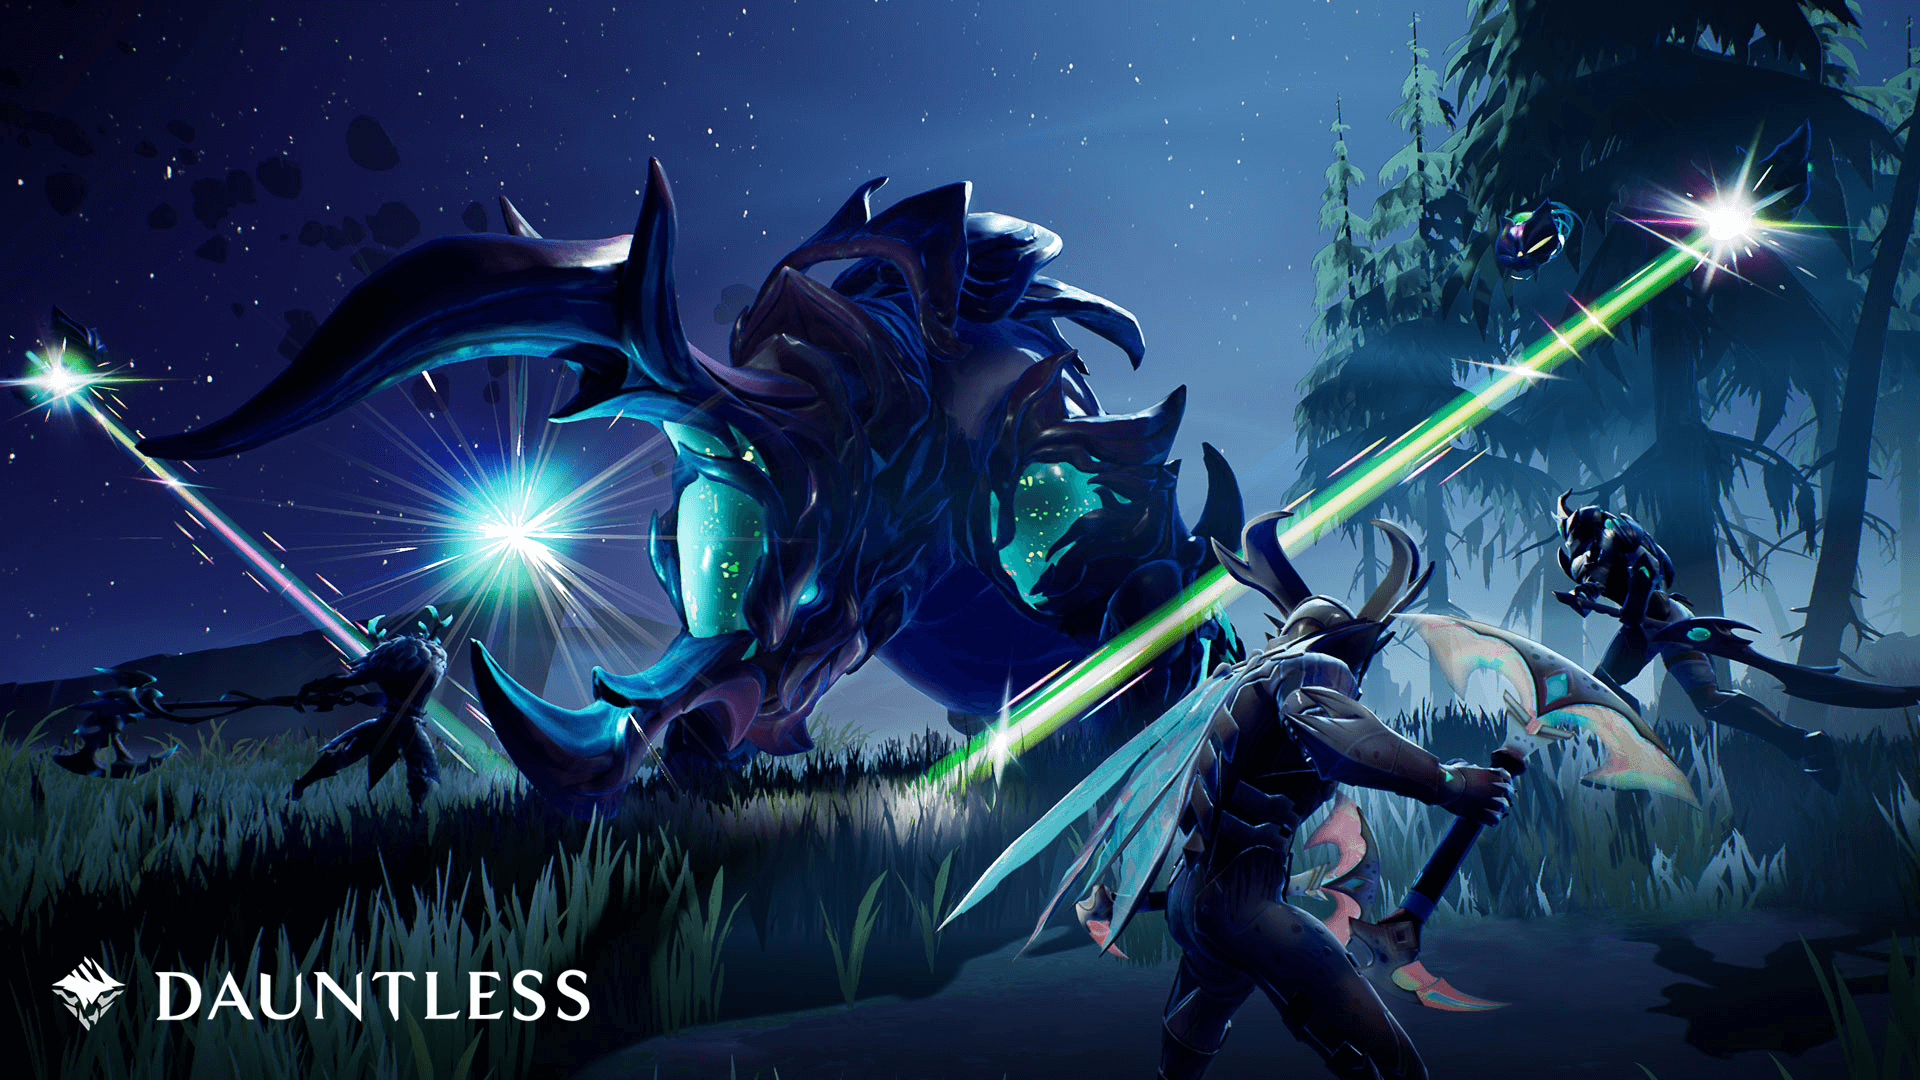 dauntless hd wallpaper 67603